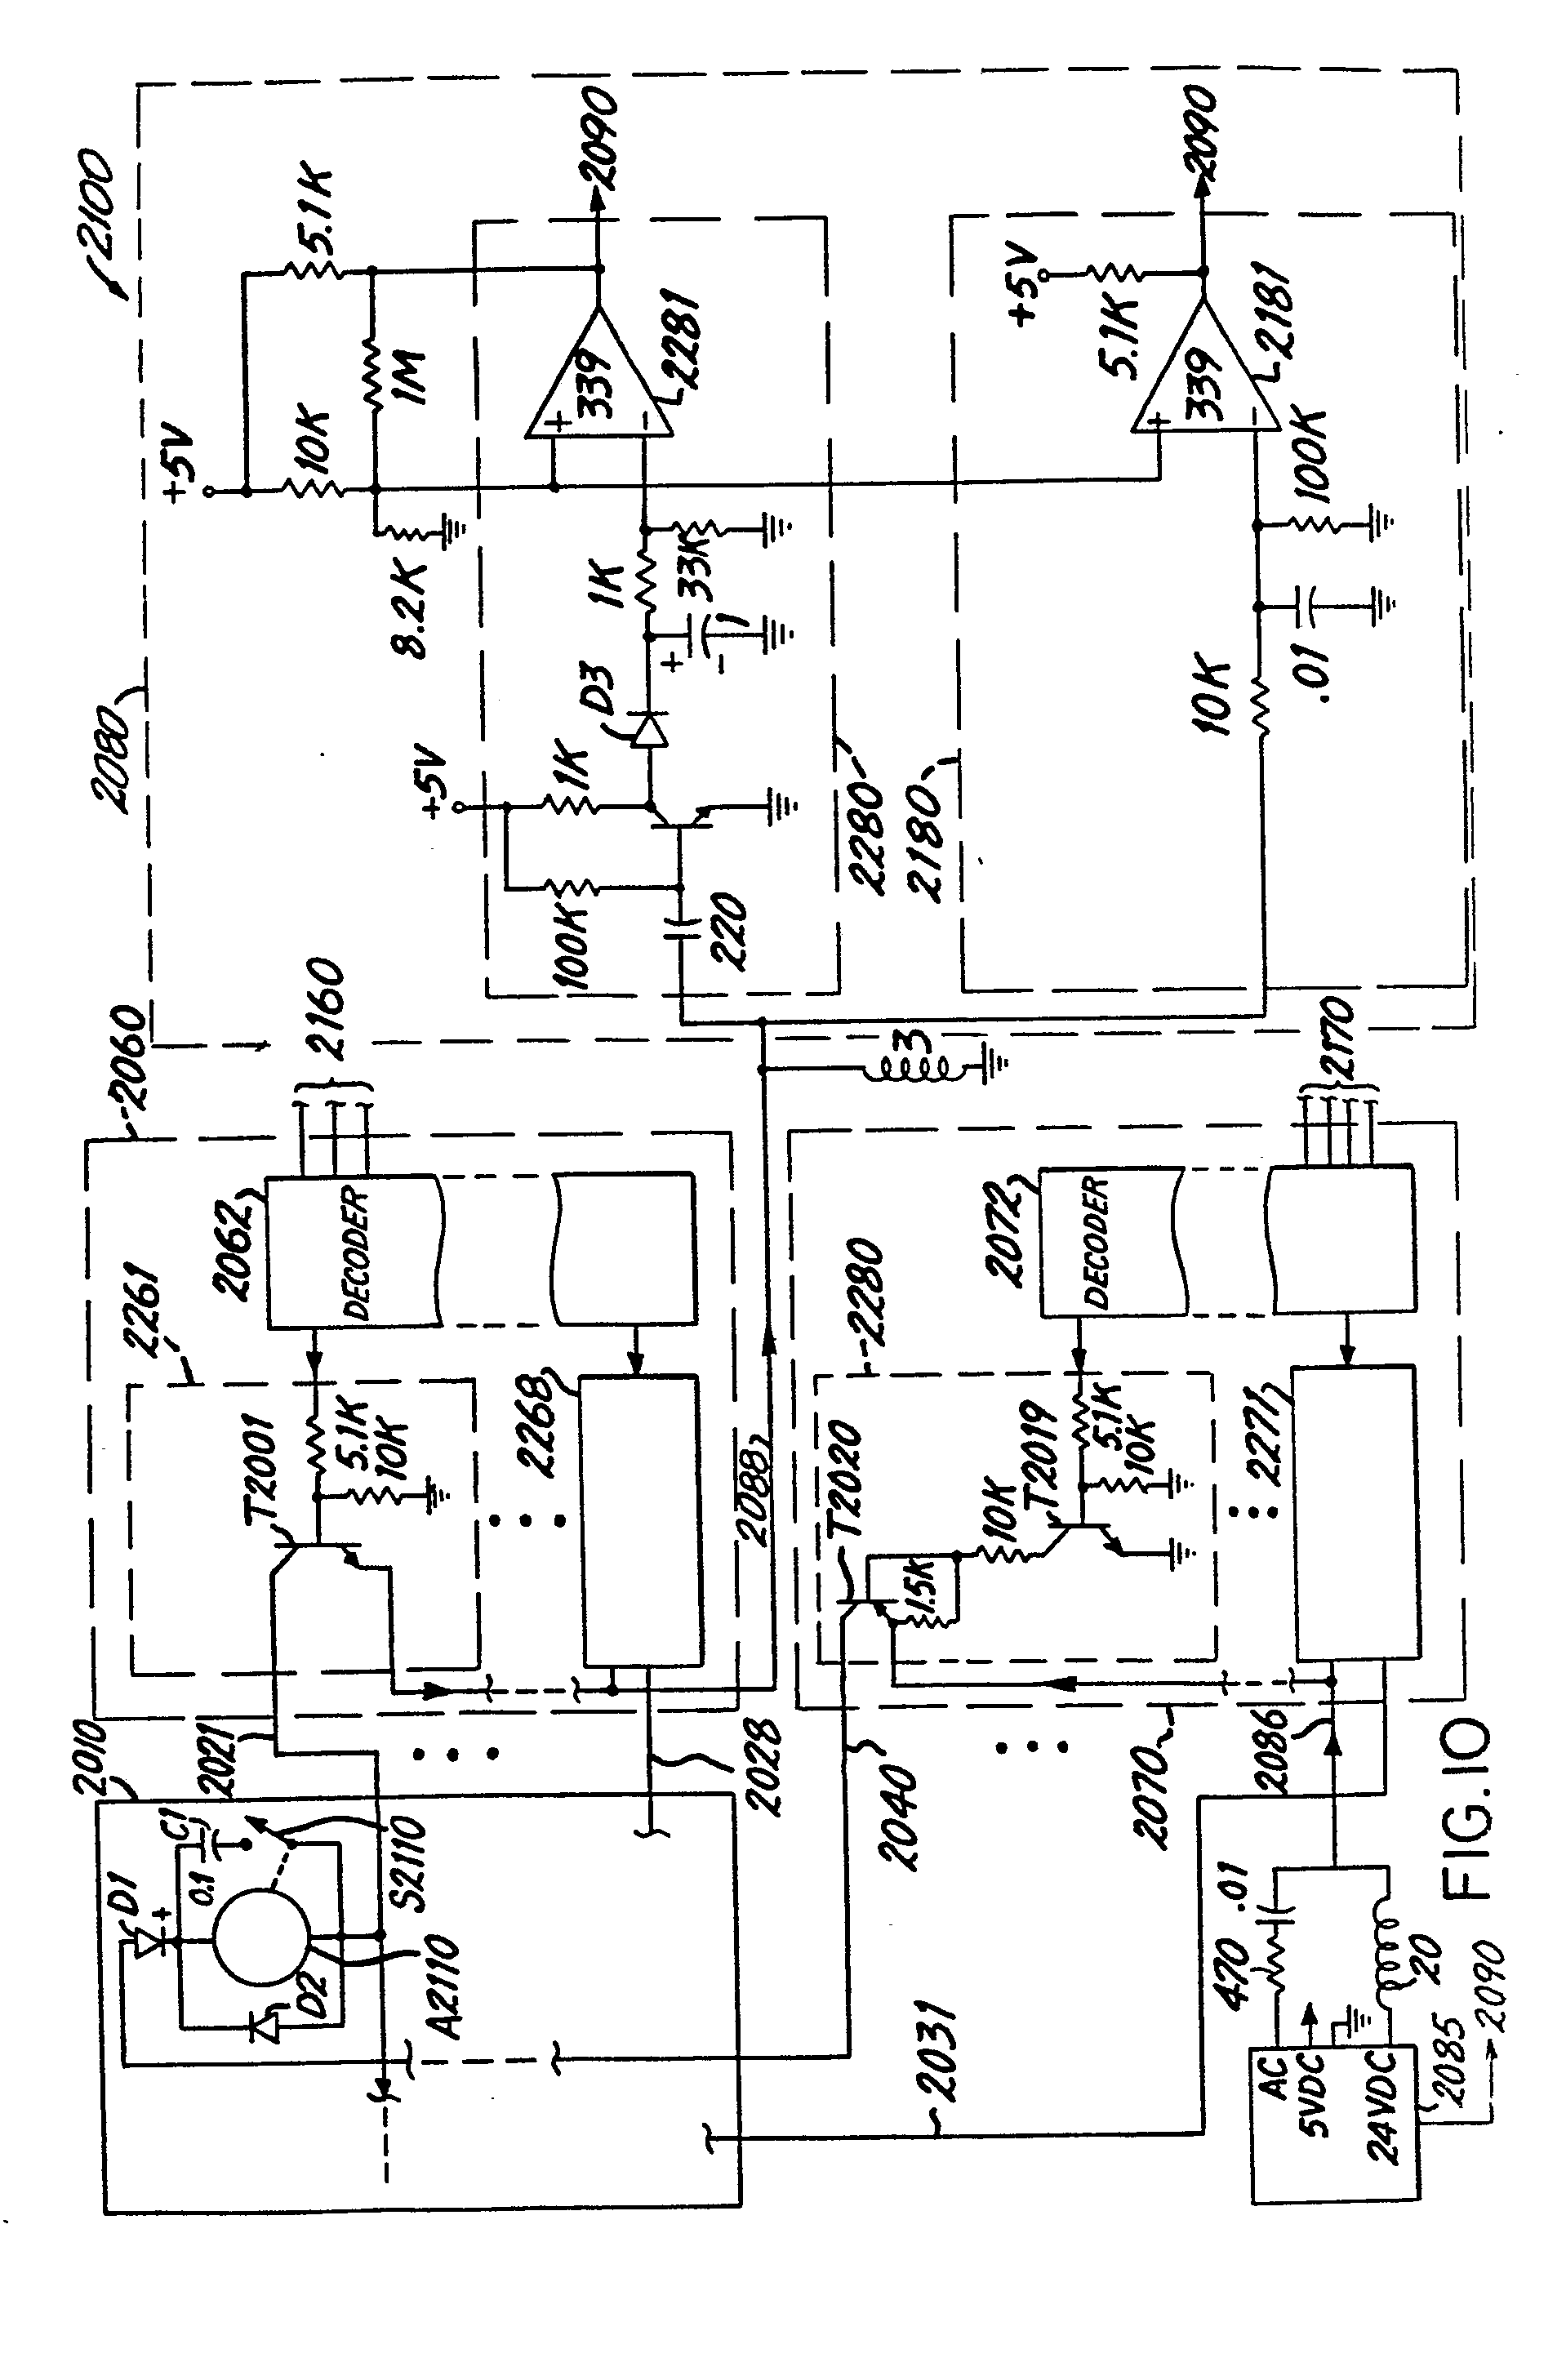 narco 810 wiring diagram   24 wiring diagram images